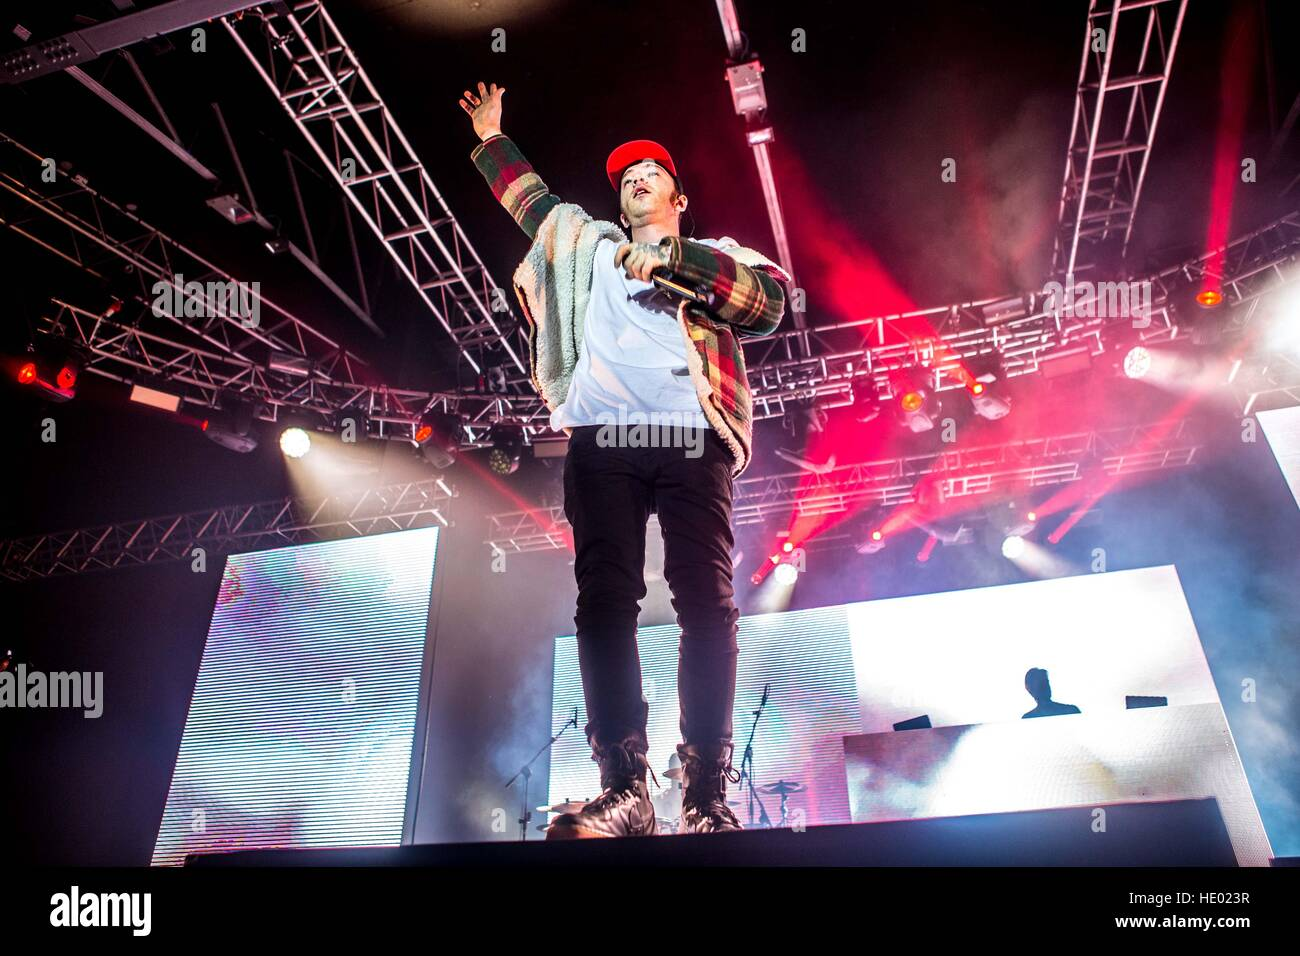 Milan, Italy. 15th Dec, 2016. Italian rapper Salmo performs live at Fabrique in Milano, Italy, on December 15 2016 Stock Photo